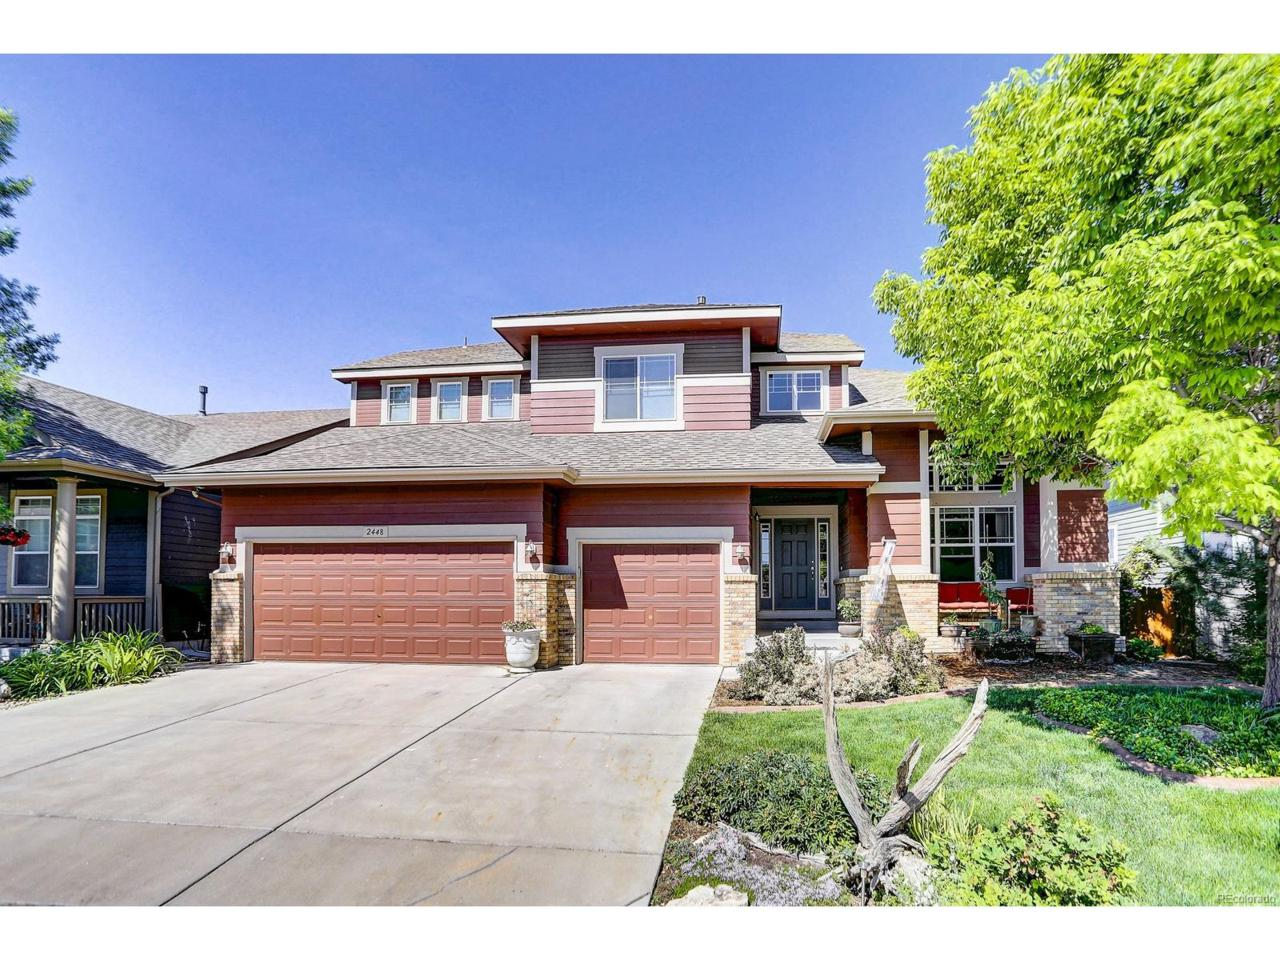 2448 White Wing Road, Johnstown, CO 80534 (MLS #8186321) :: 8z Real Estate